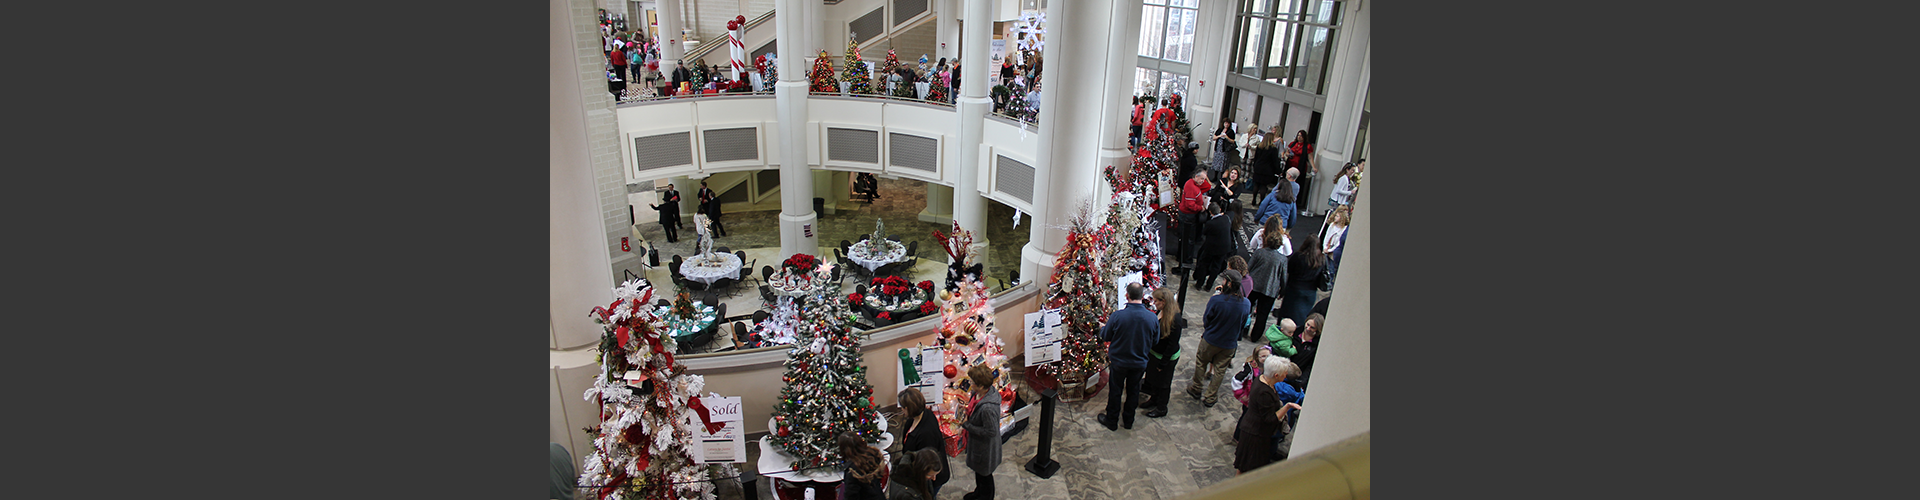 overhead view of patrols viewing displays at the Festival of Trees